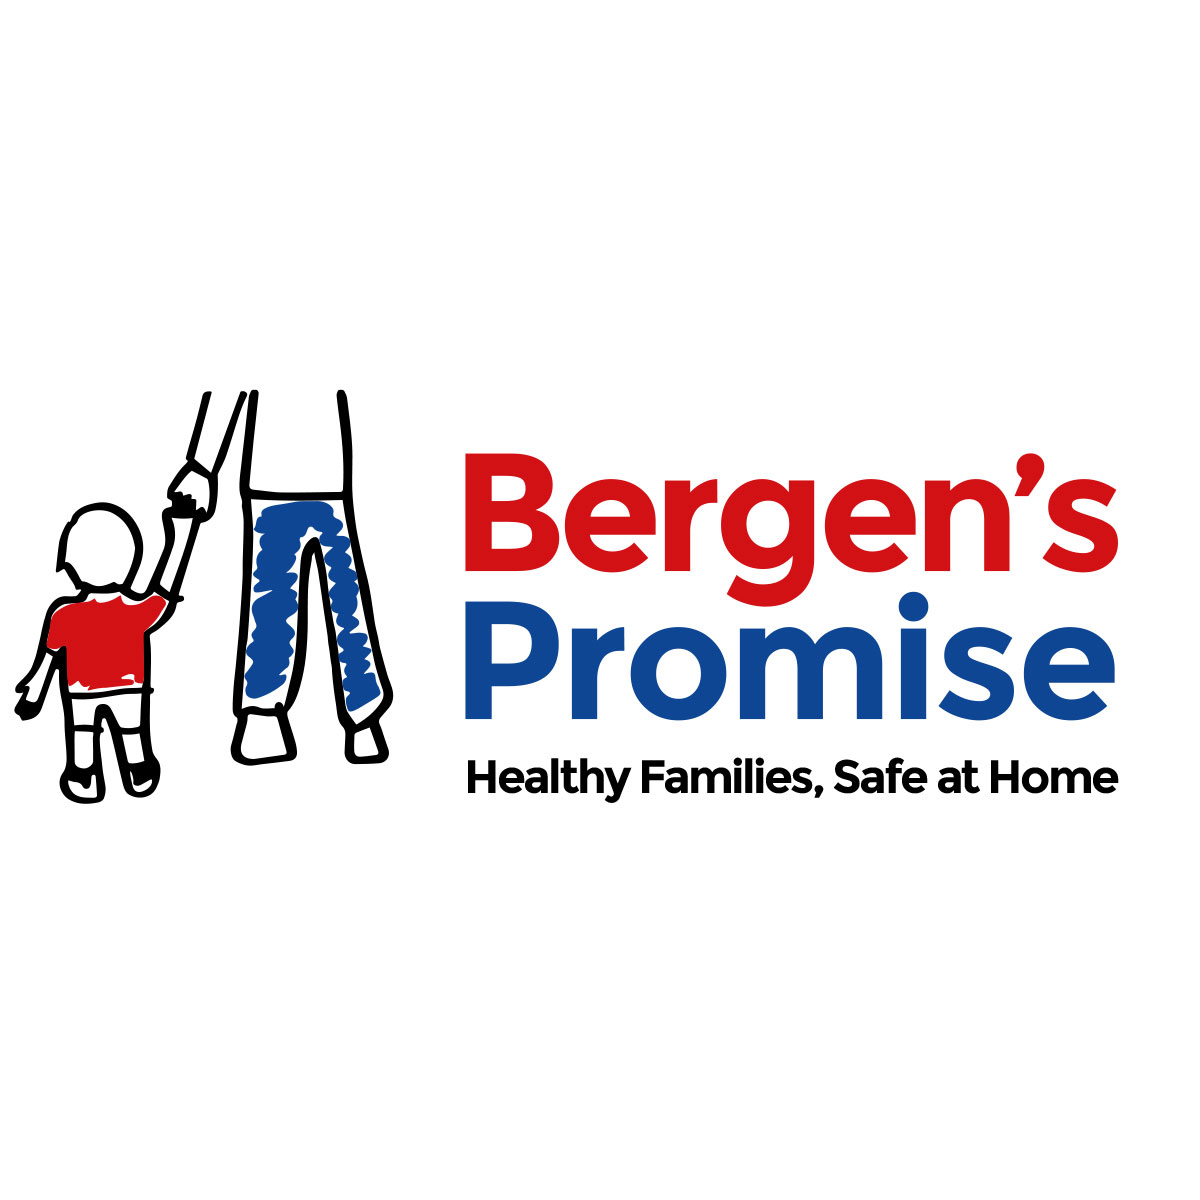 Bergen's Promise - The Care Management Organization for